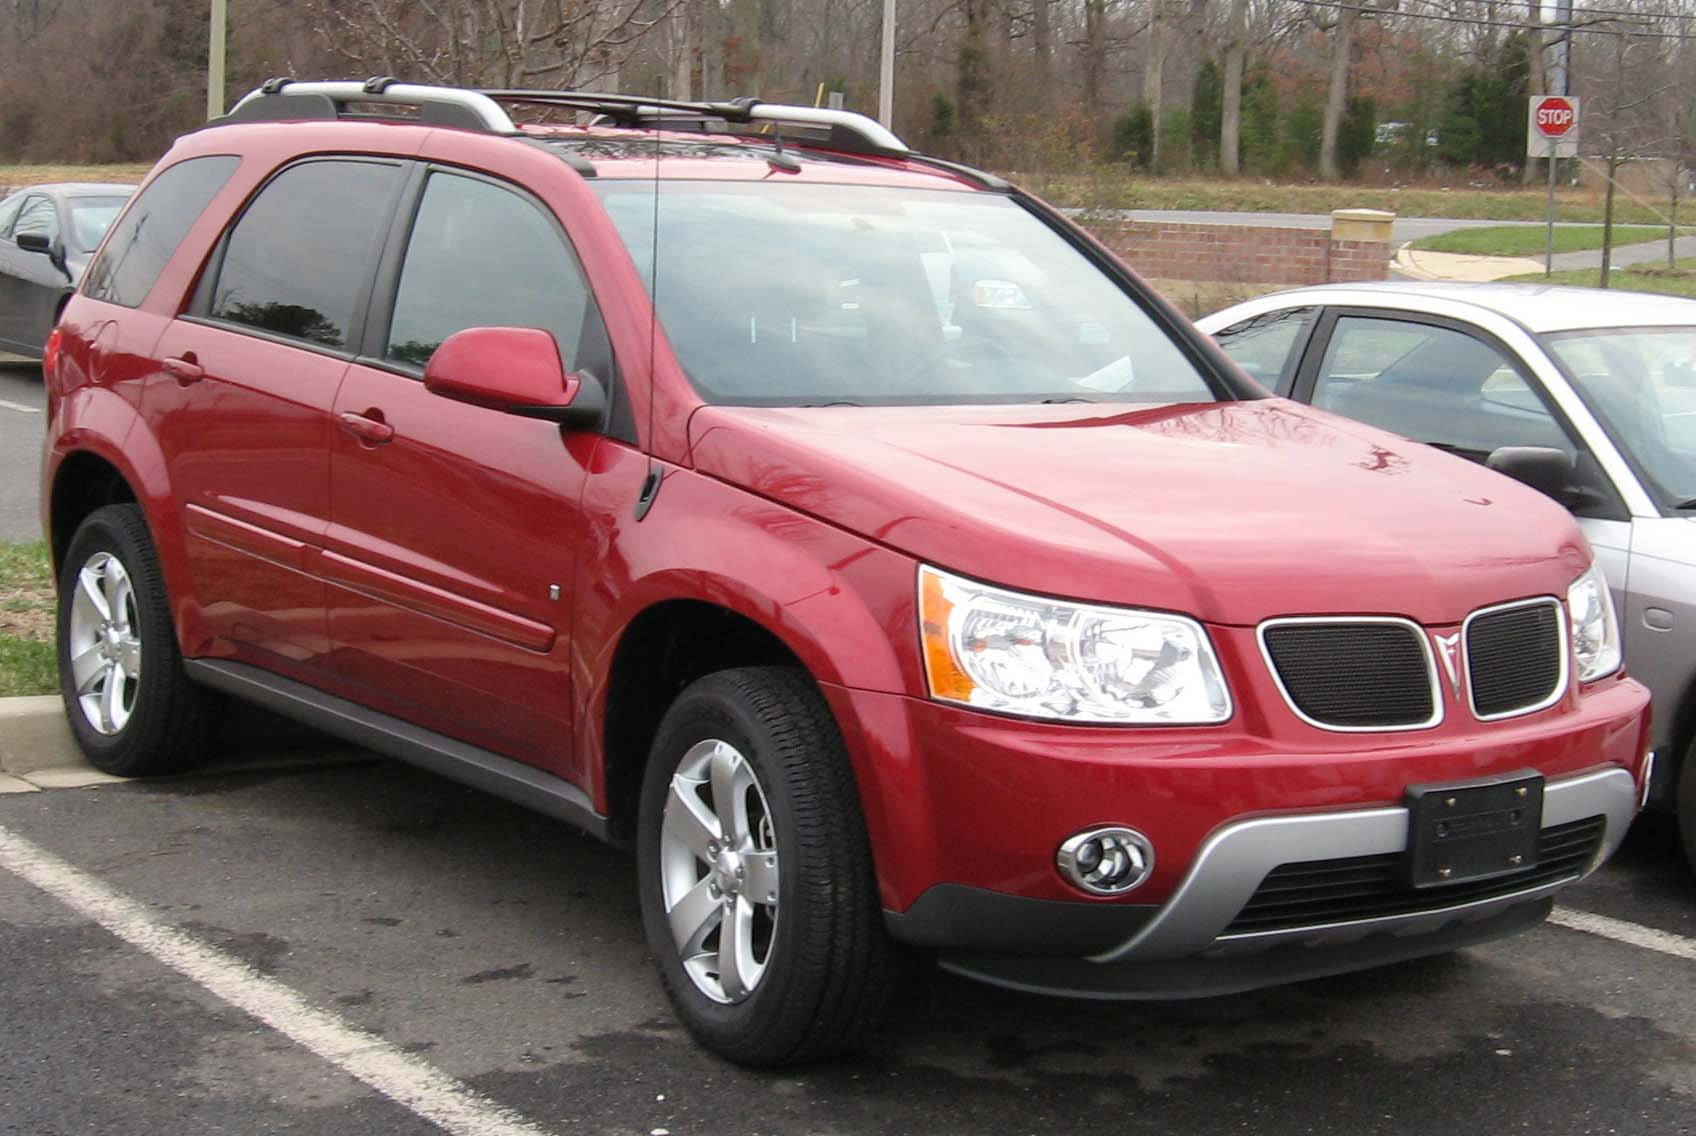 Pontiac Torrent #17